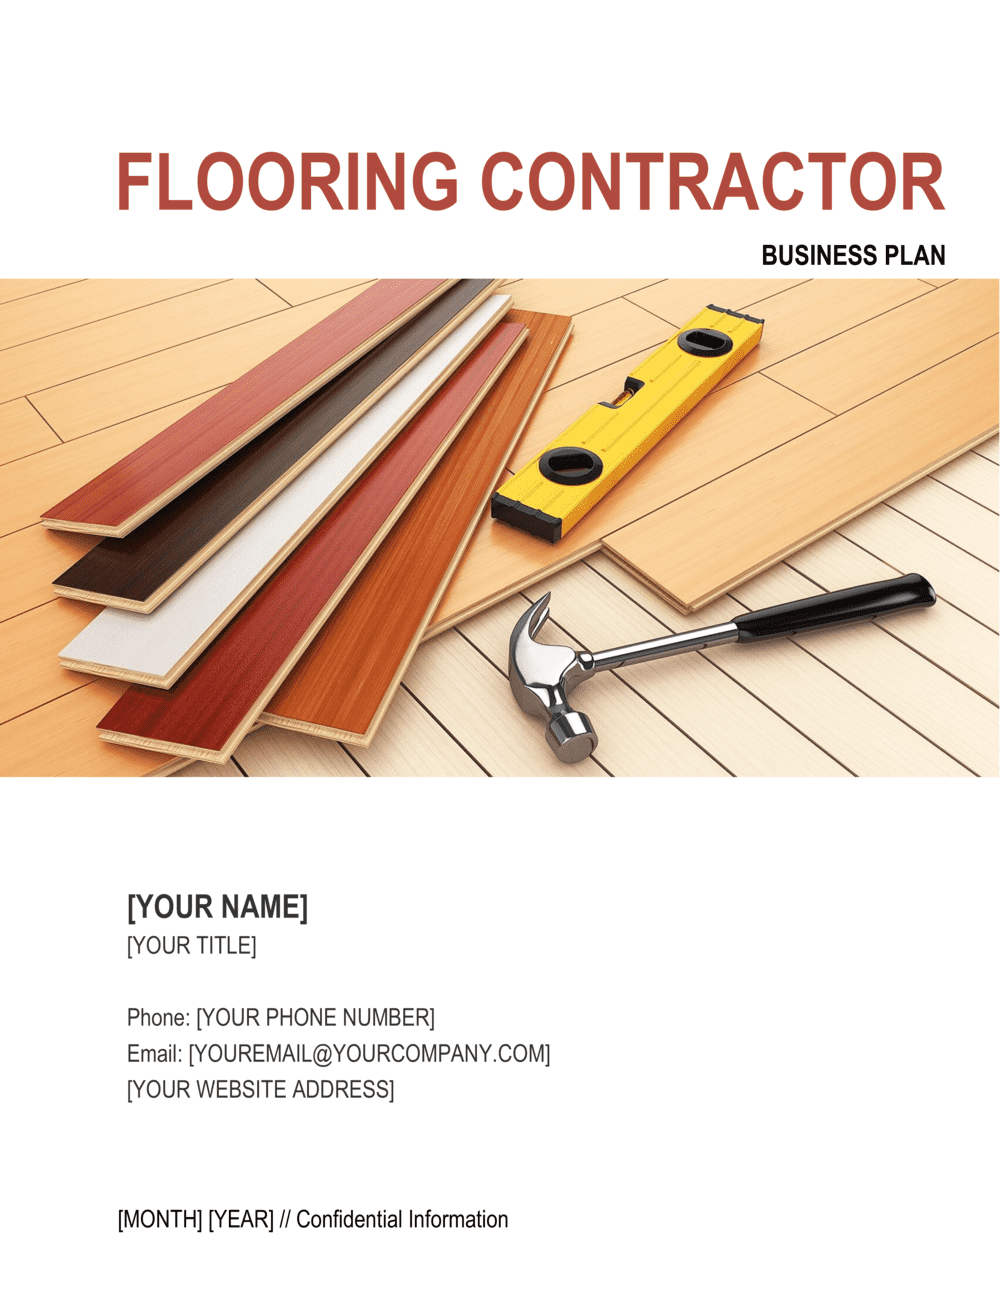 Business-in-a-Box's Flooring Contractor Business Plan Template